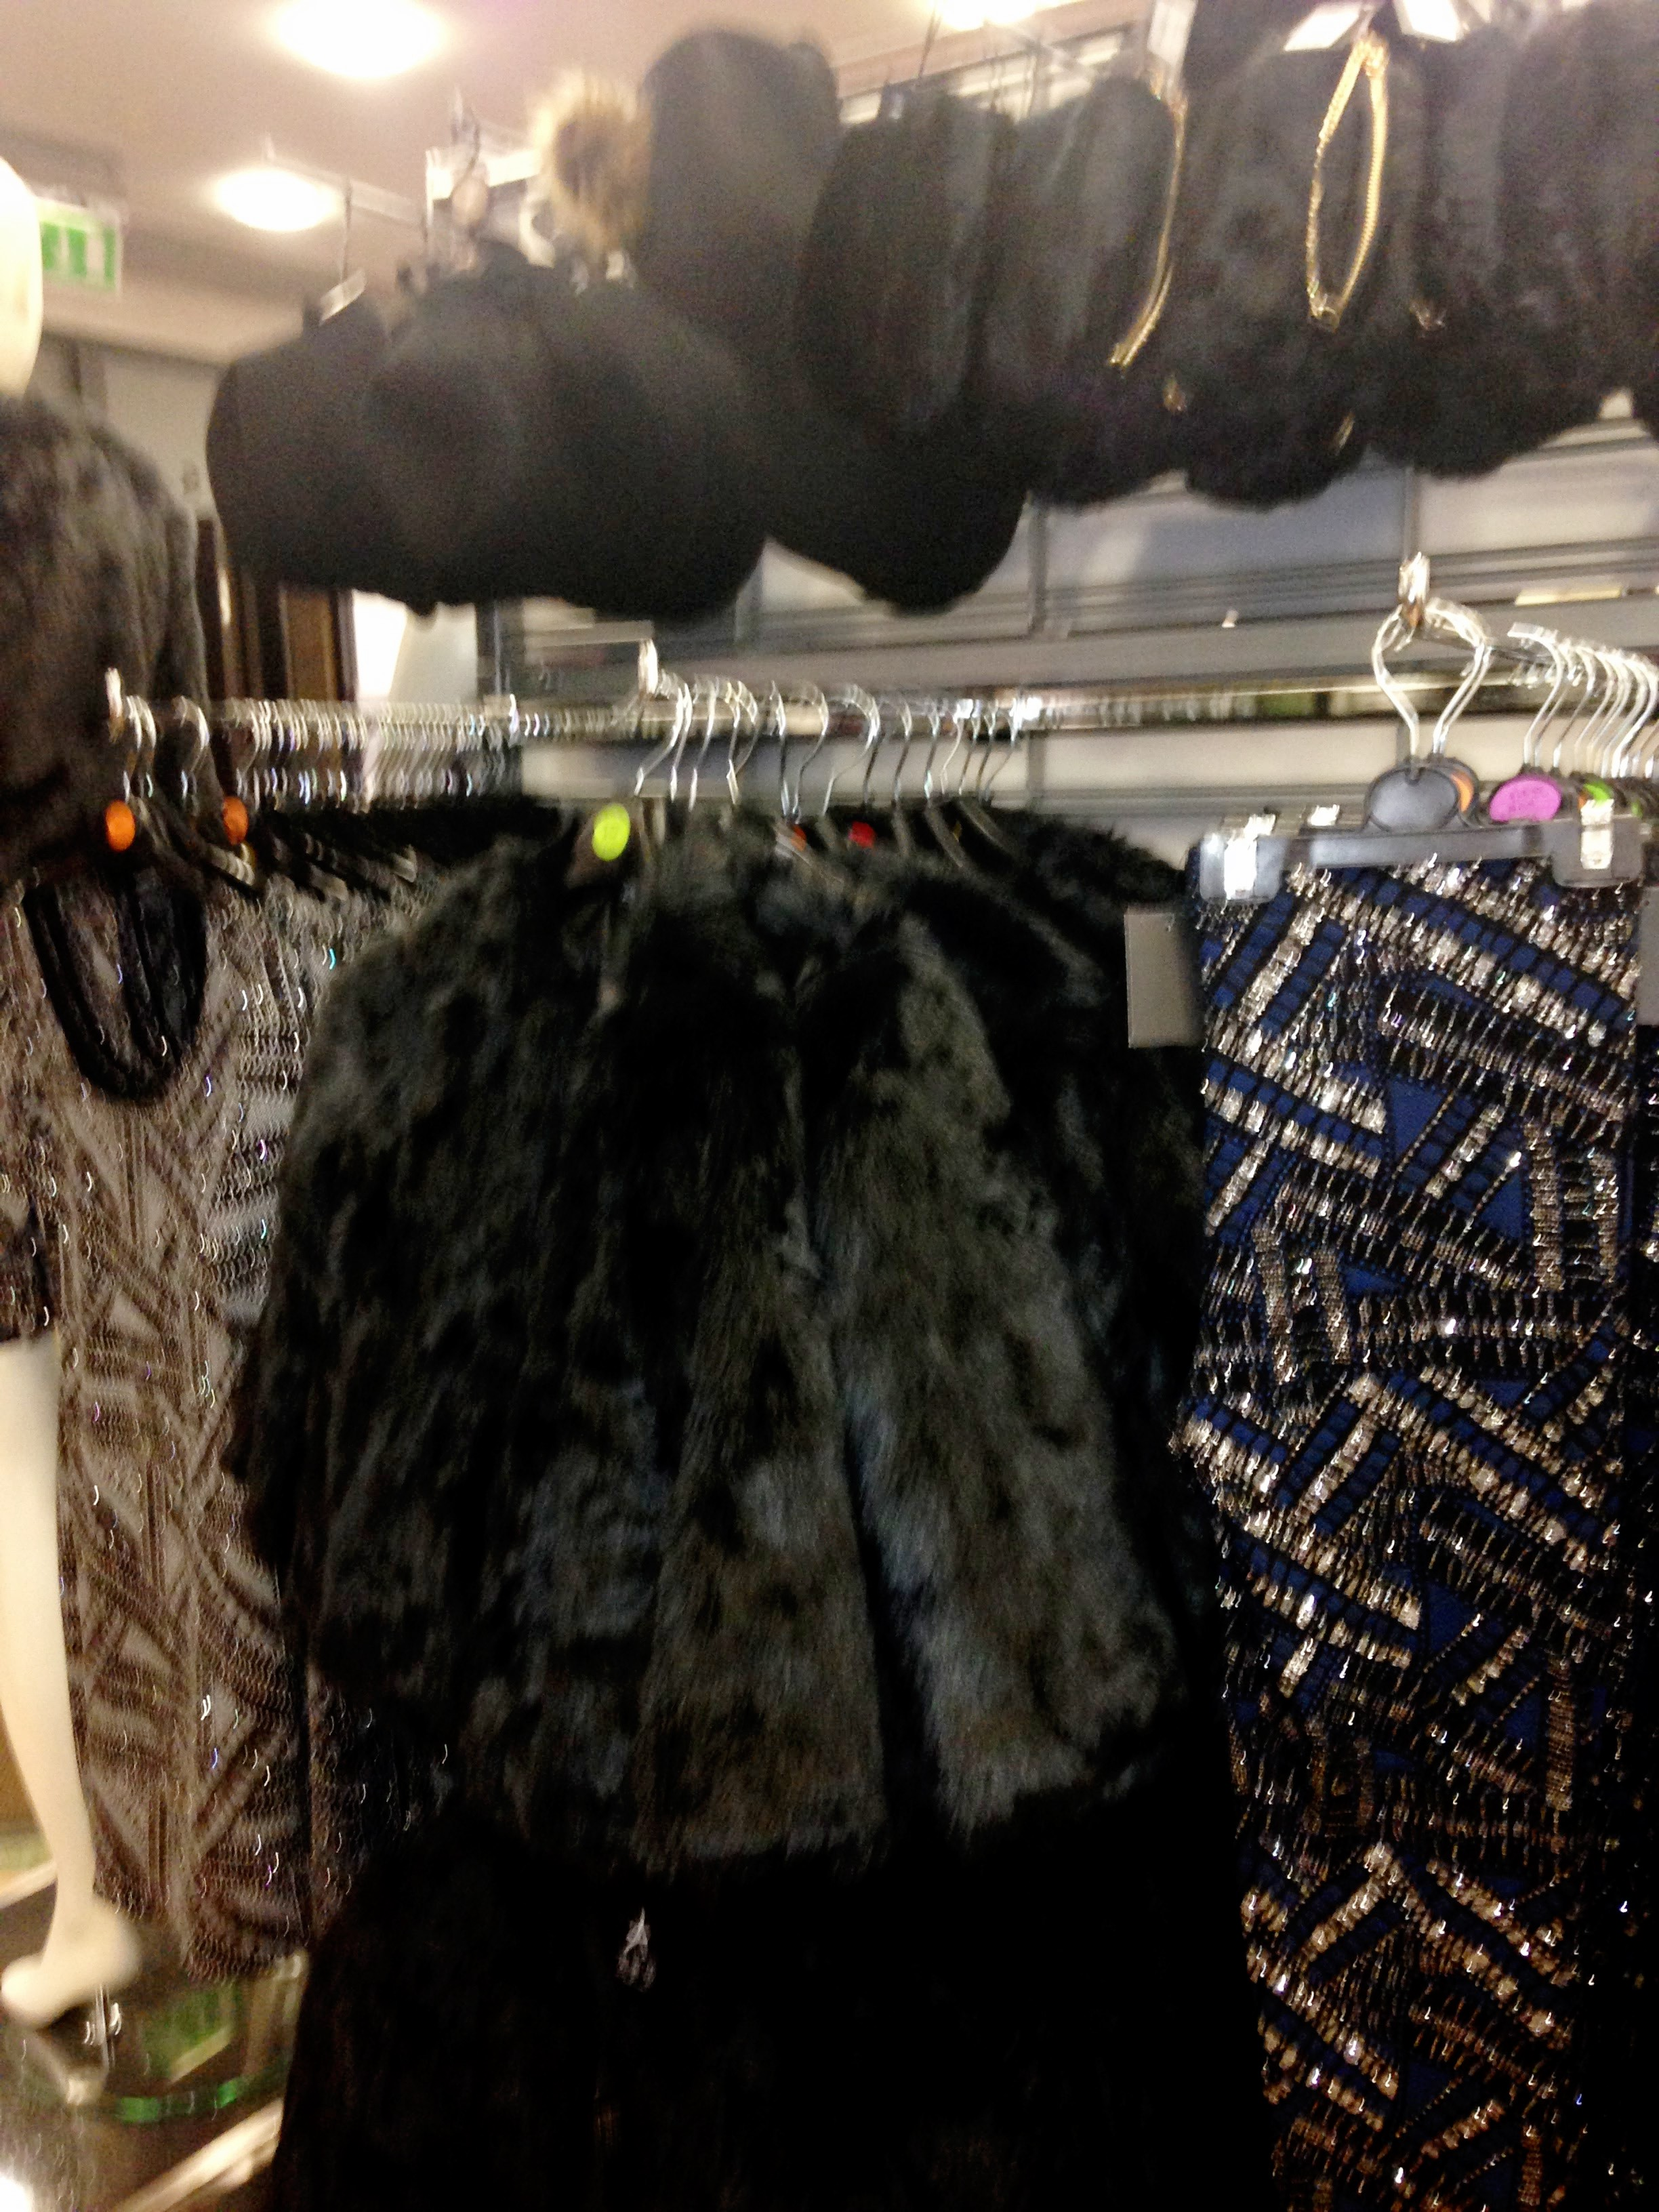 Xmas Collection Newly arrived in Penneys/Primark. Black cop fur jacket €25.00 . Beaded leggings €12.00. AMAZING VALUE